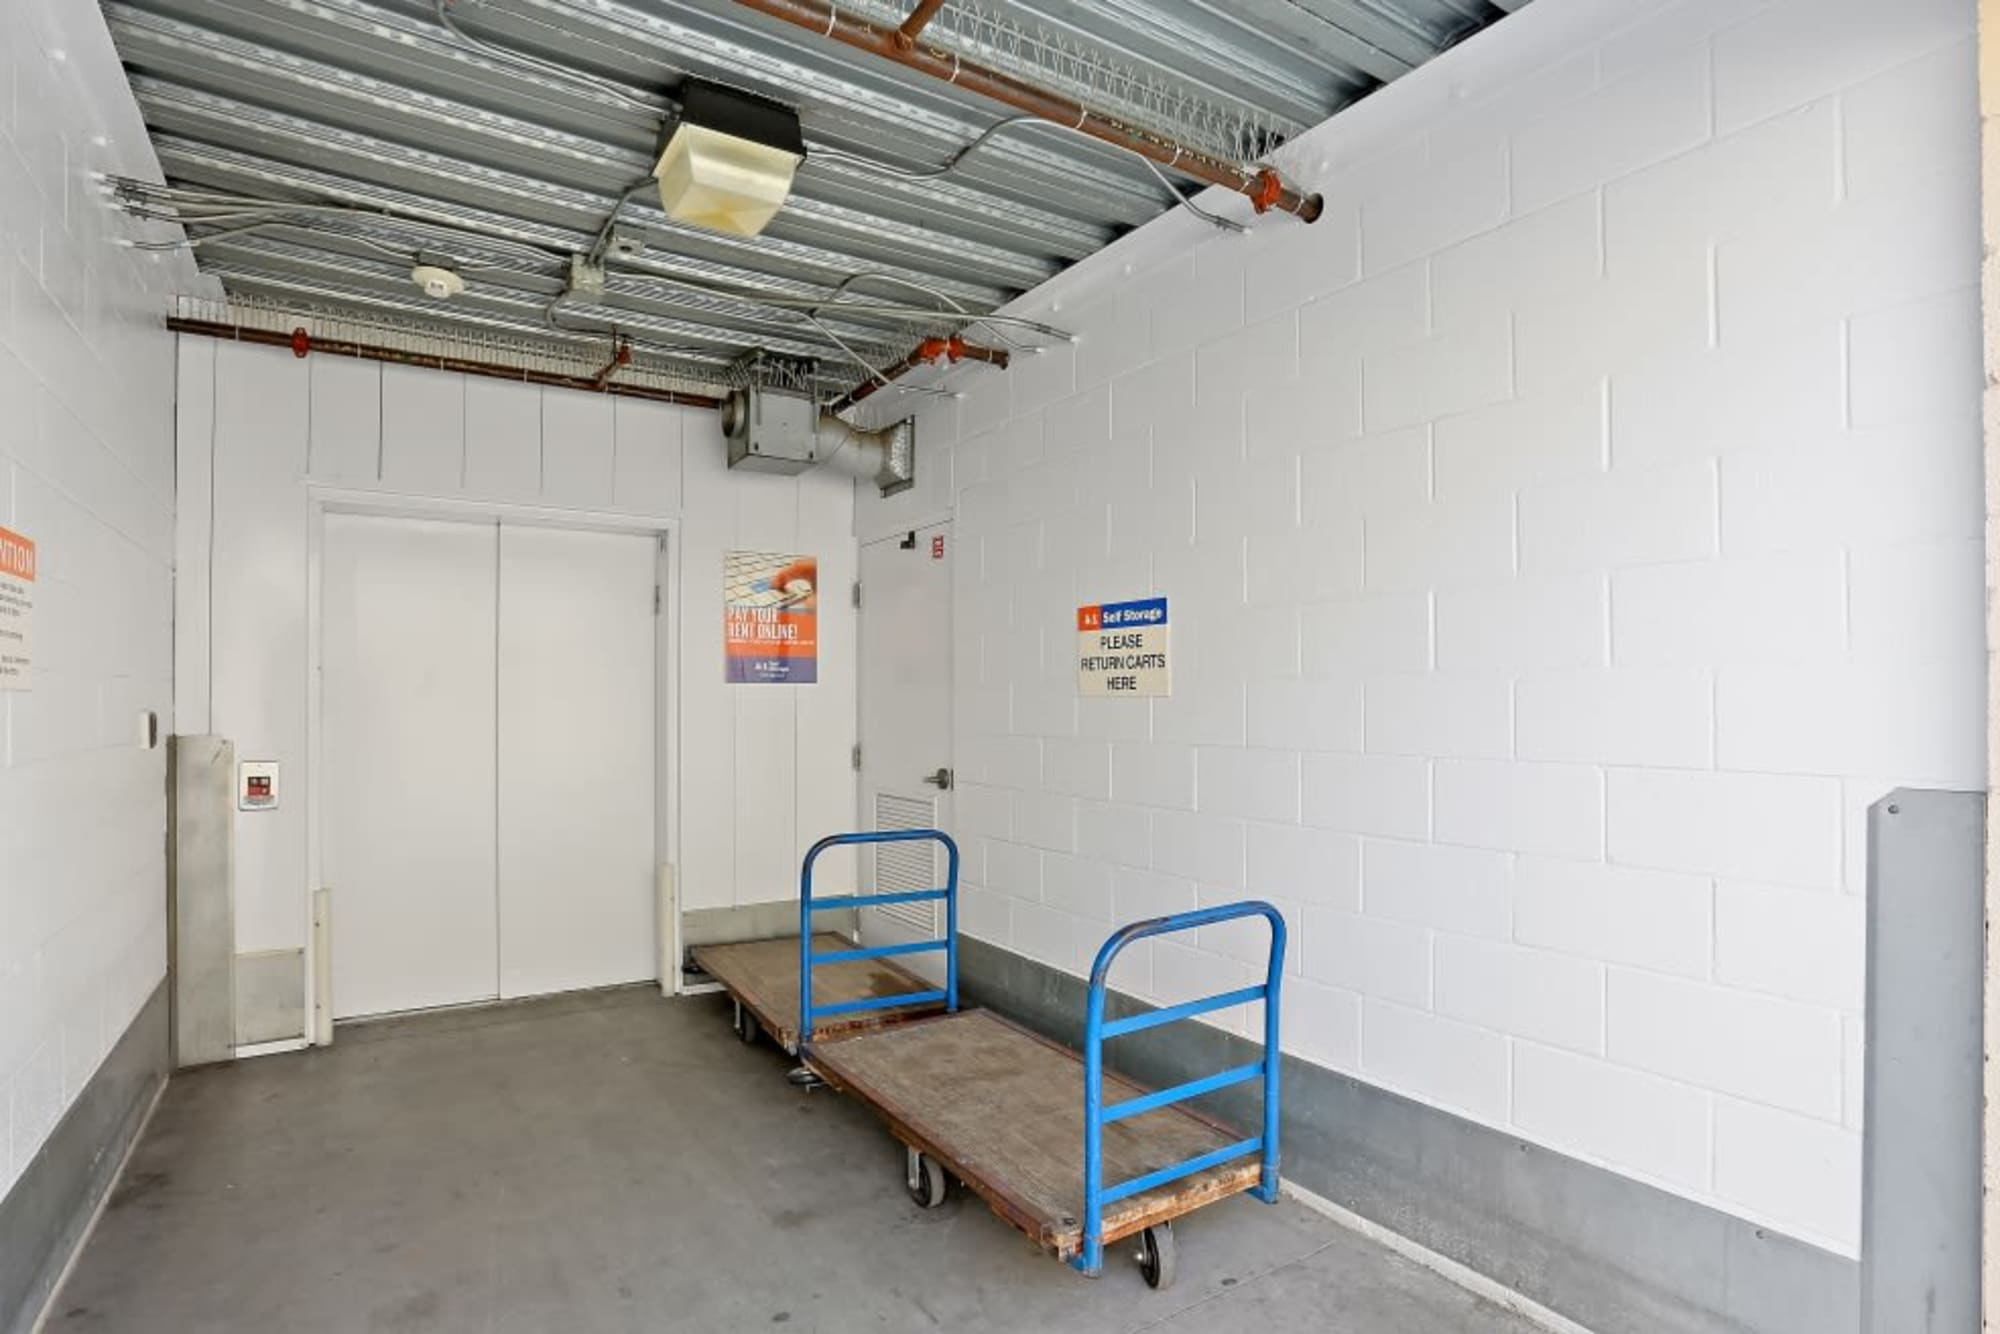 The freight elevator at A-1 Self Storage in Lakeside, California